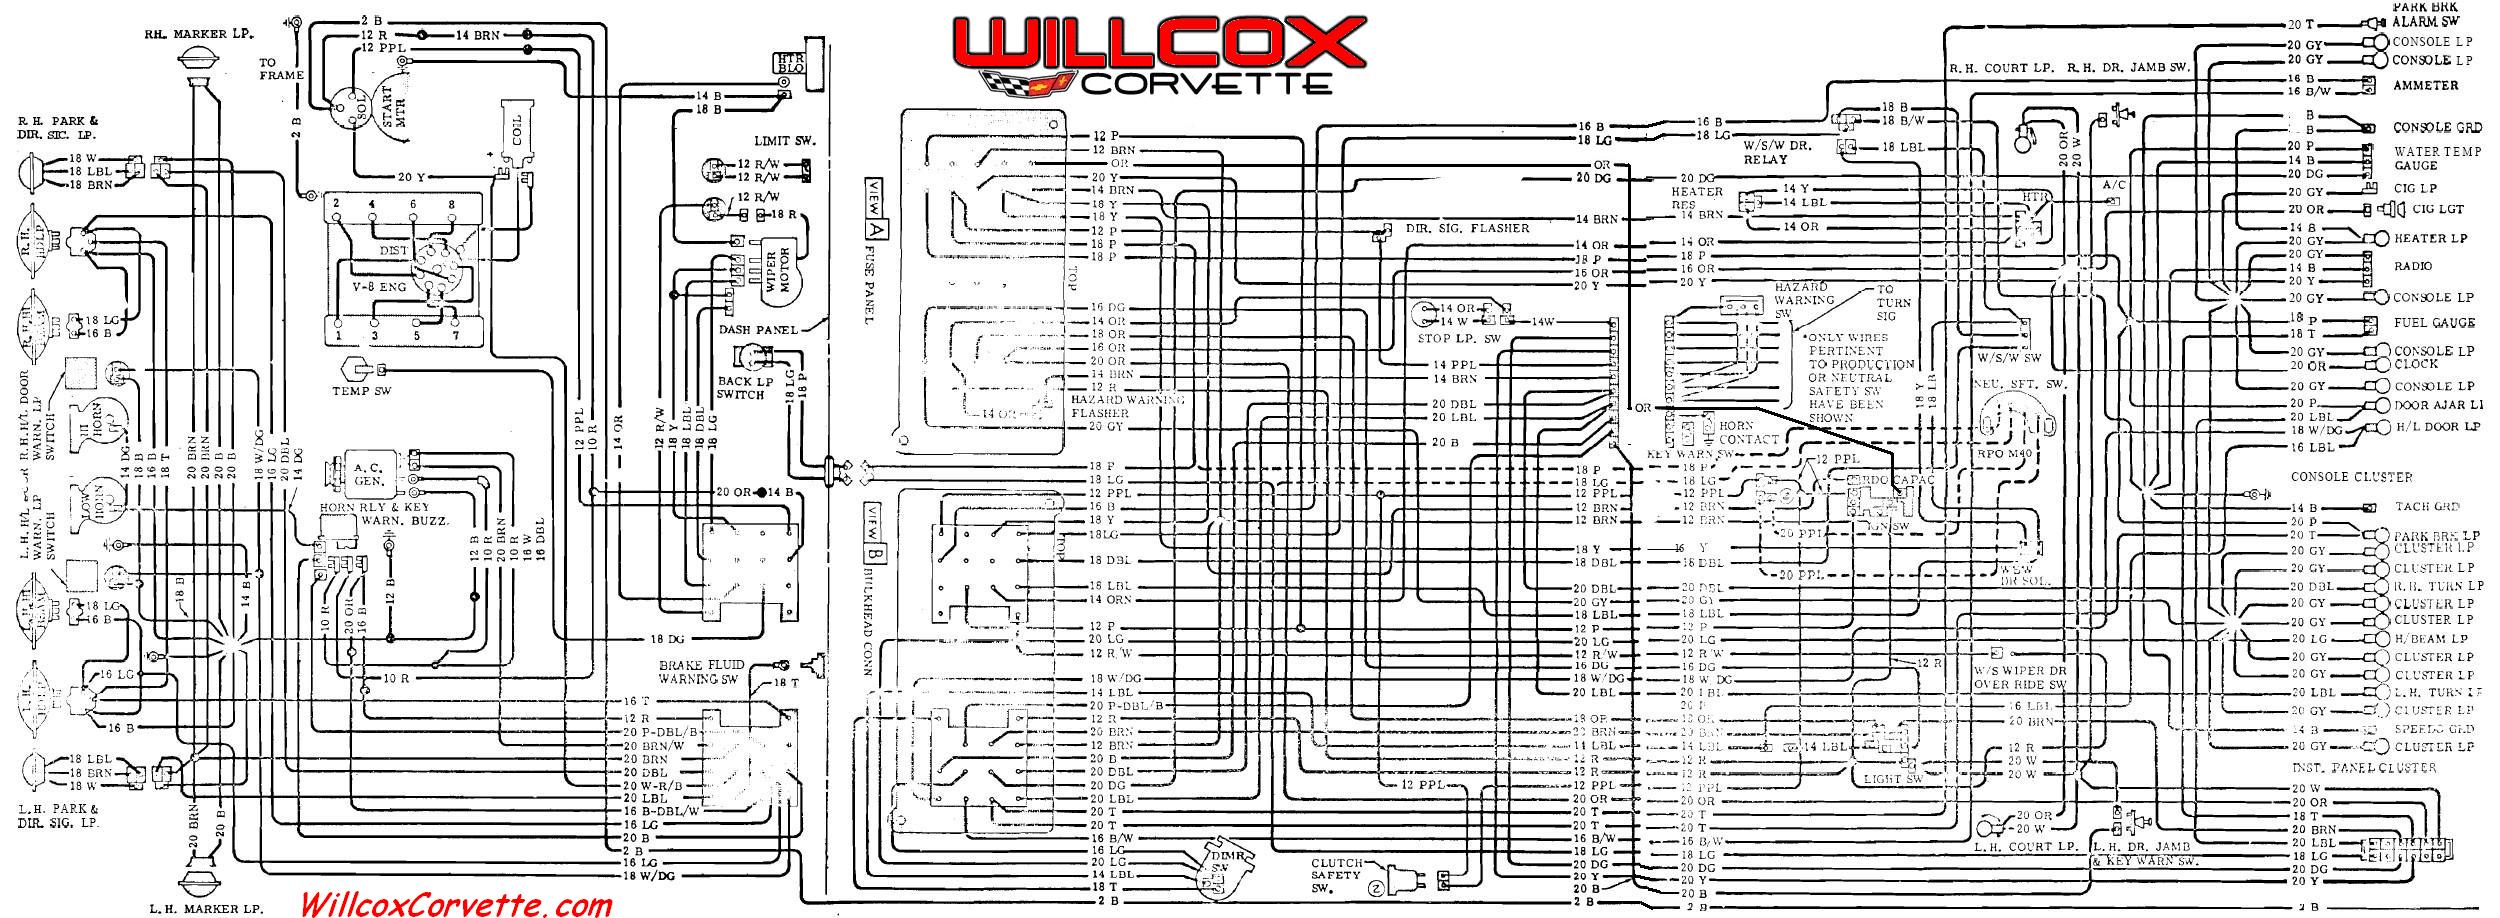 69 trace harness forward and main schematic with missing wire added2?resized665%2C244 1983 chevrolet c20 wiring diagram 1984 chevrolet c10 wiring 1981 chevrolet c10 wiring diagram at gsmx.co